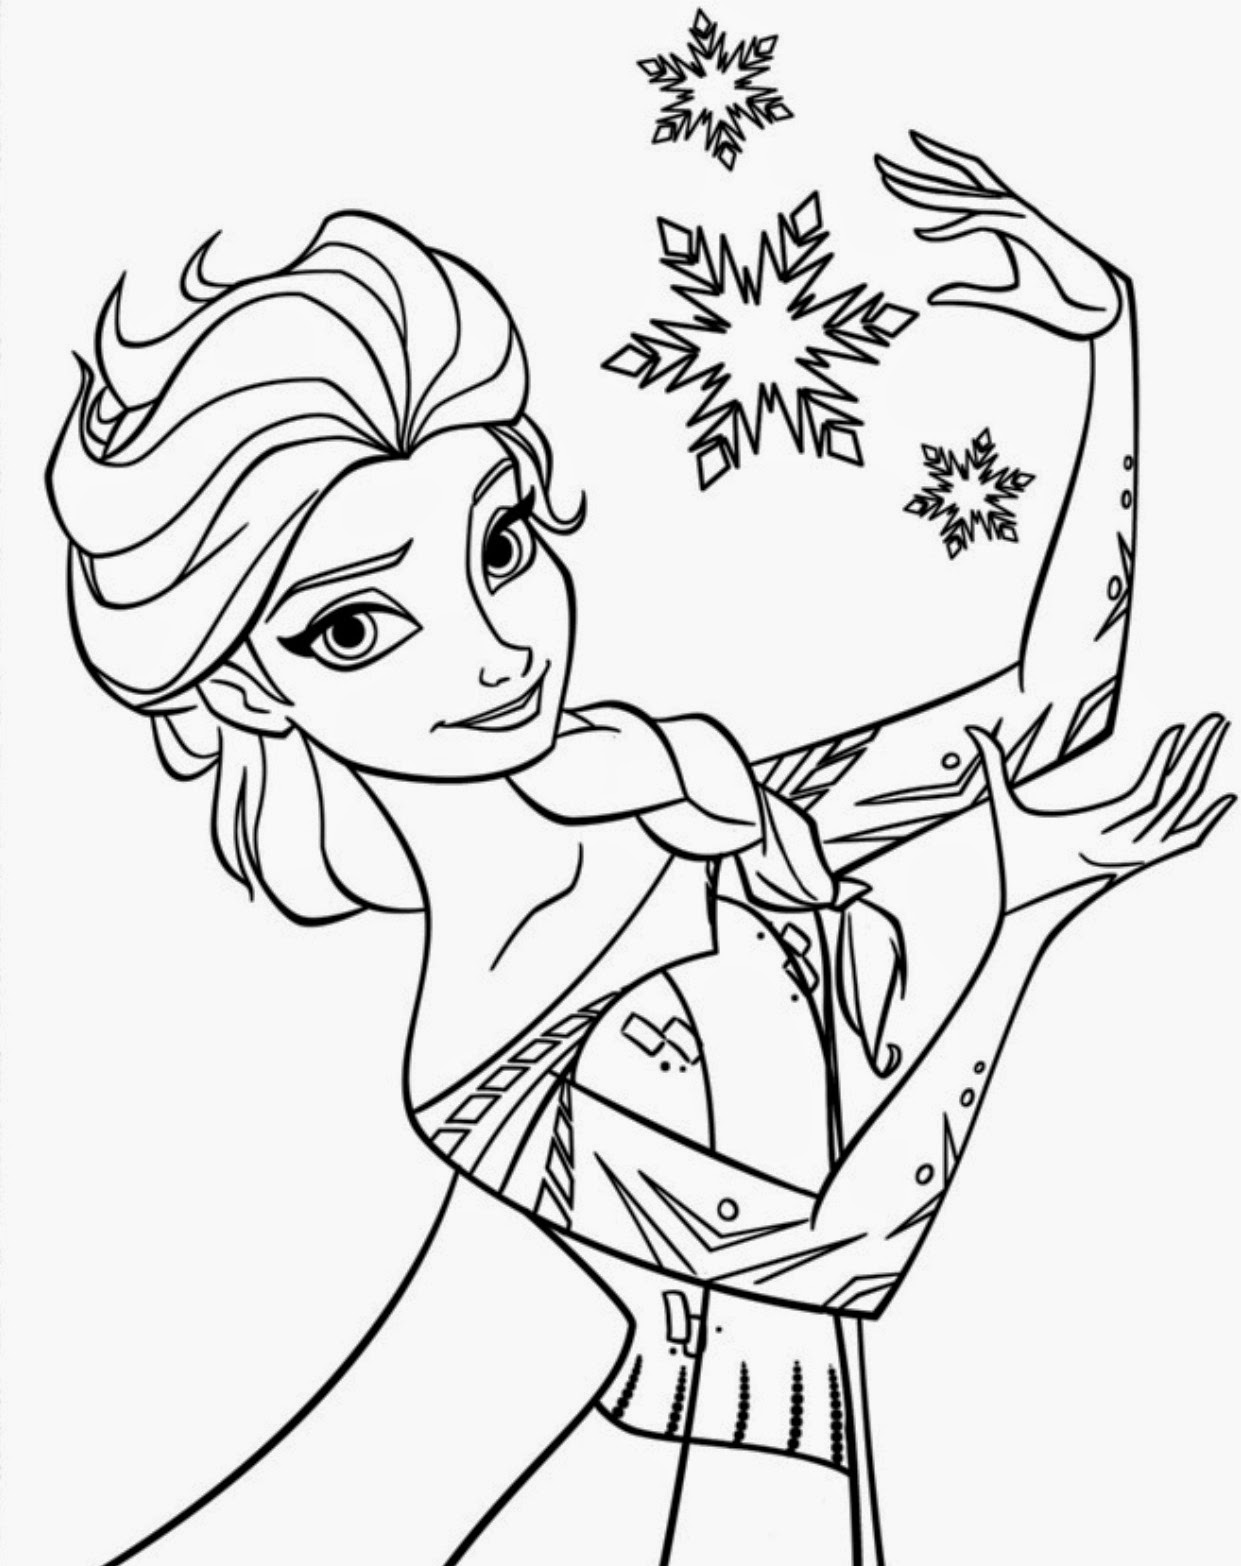 frozen coloring pages to print disney frozen printable coloring pages disney coloring book frozen pages print to coloring